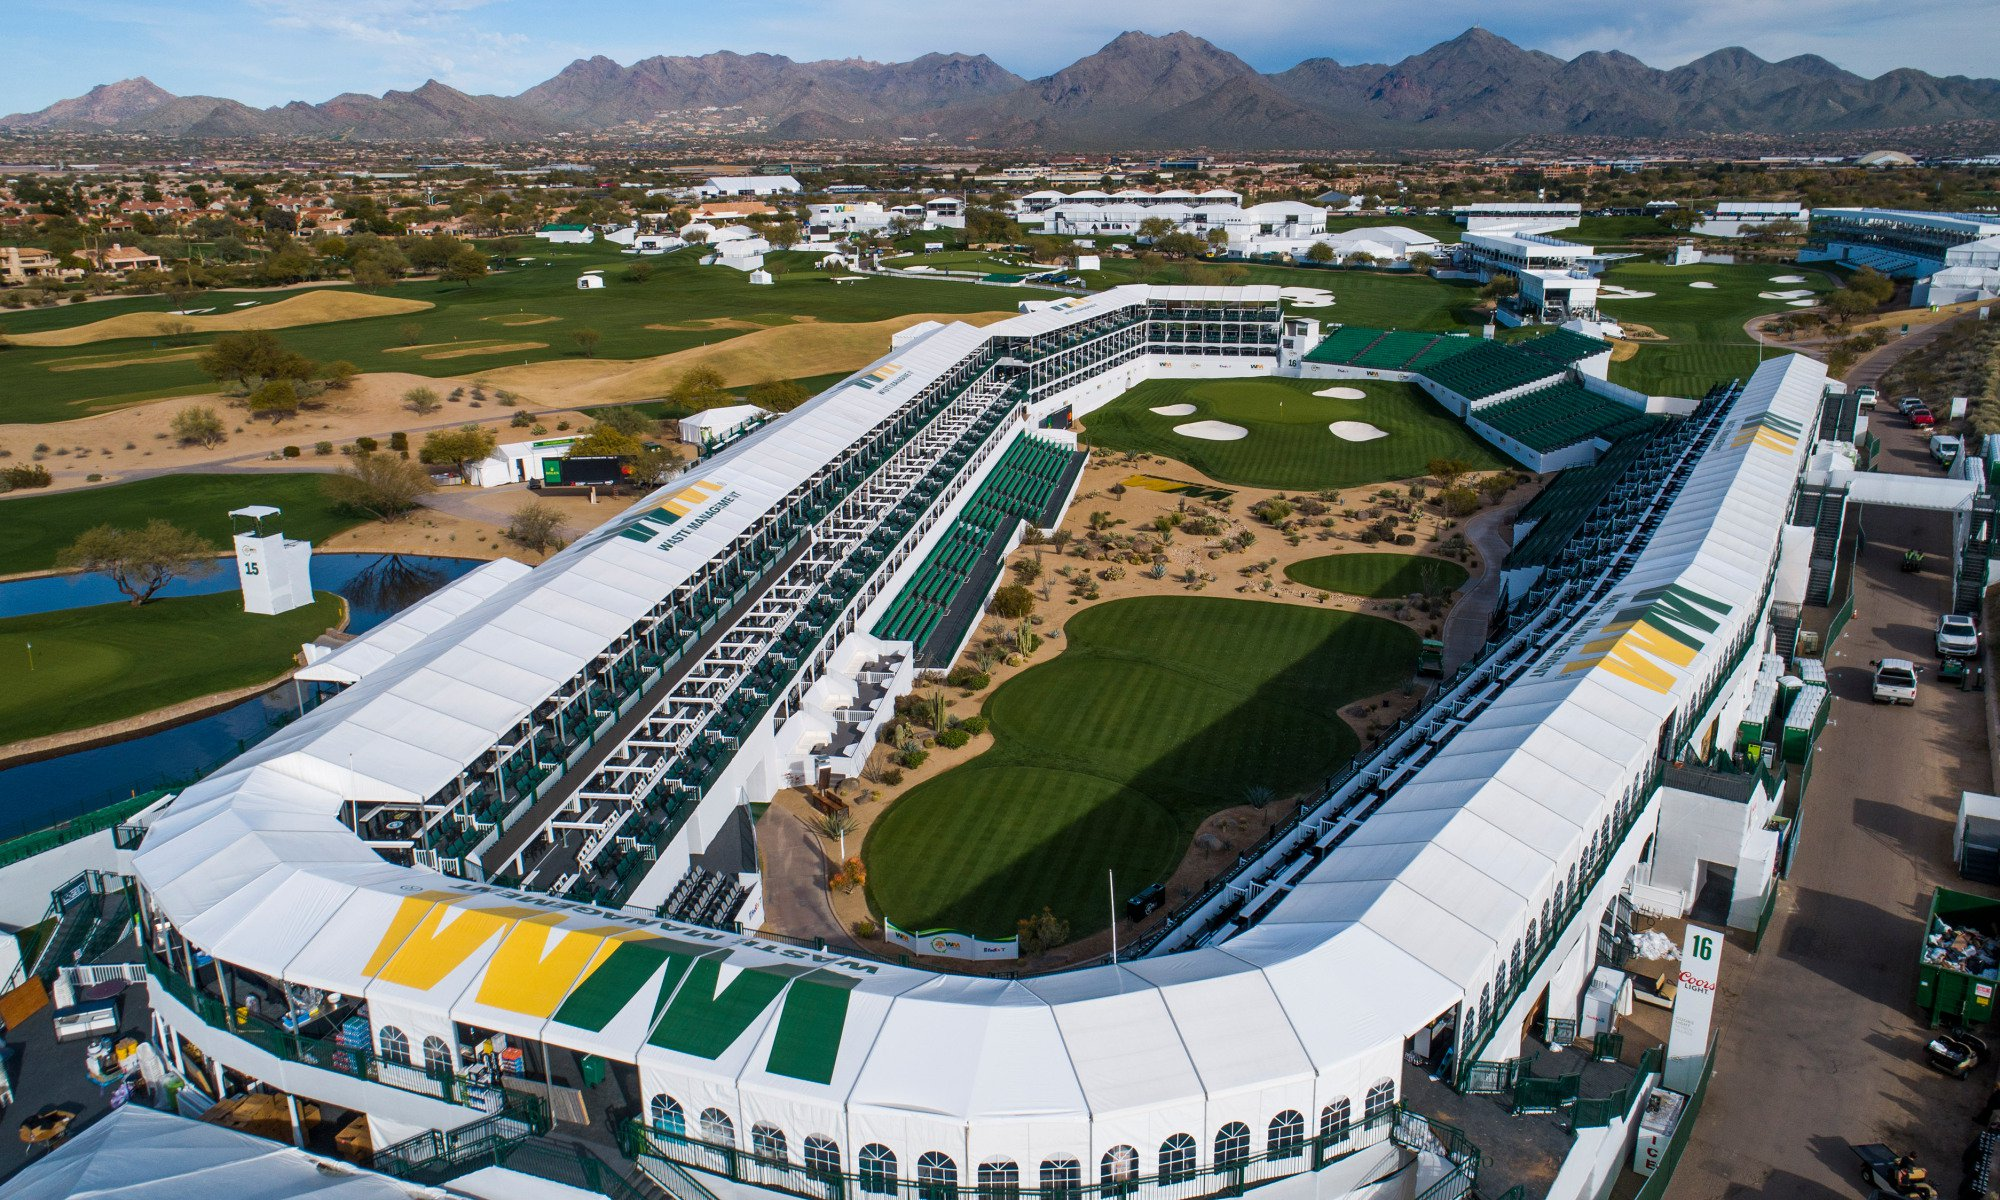 Drone aerial view of the 16th hole at the TPC of Scottsdale January 24, 2020,